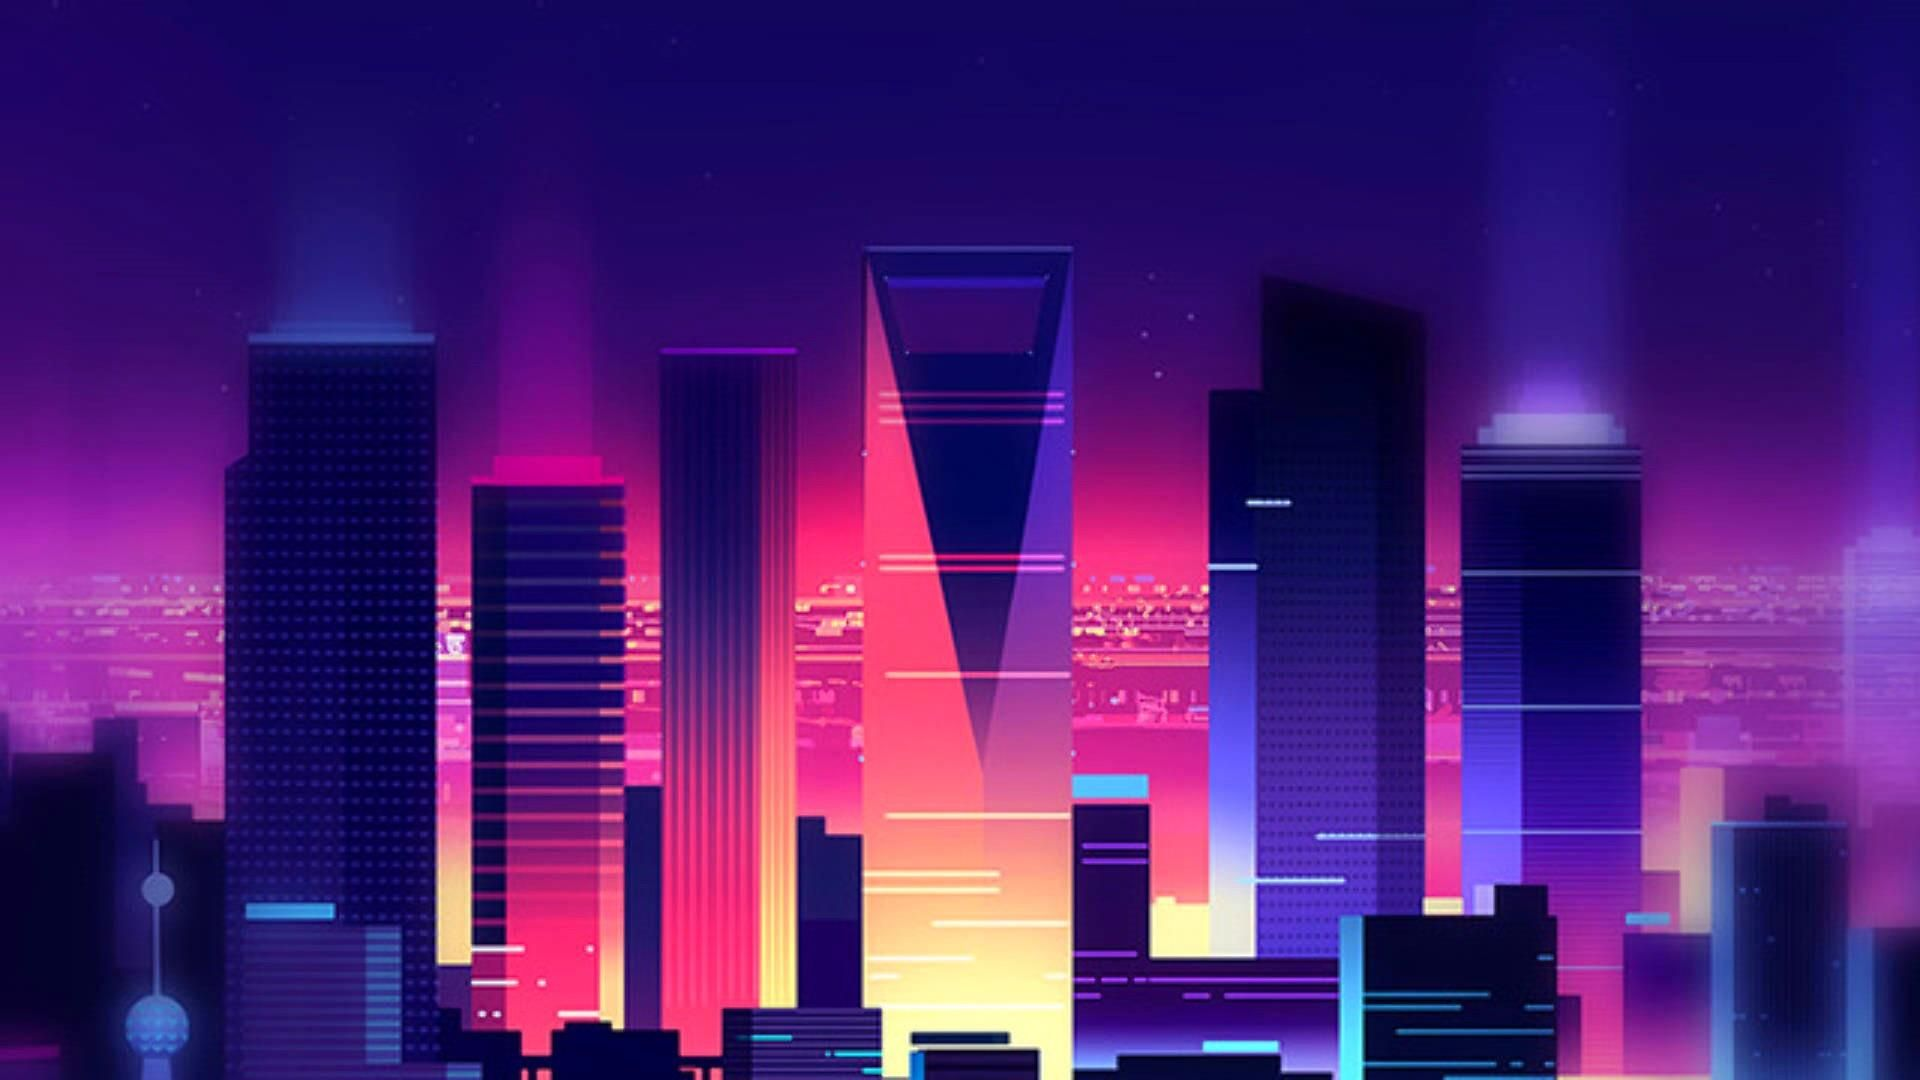 Lo Fi Collection See All Wallpapers Wallpapers Background Art Synthwave Vaporwave Retro Waves